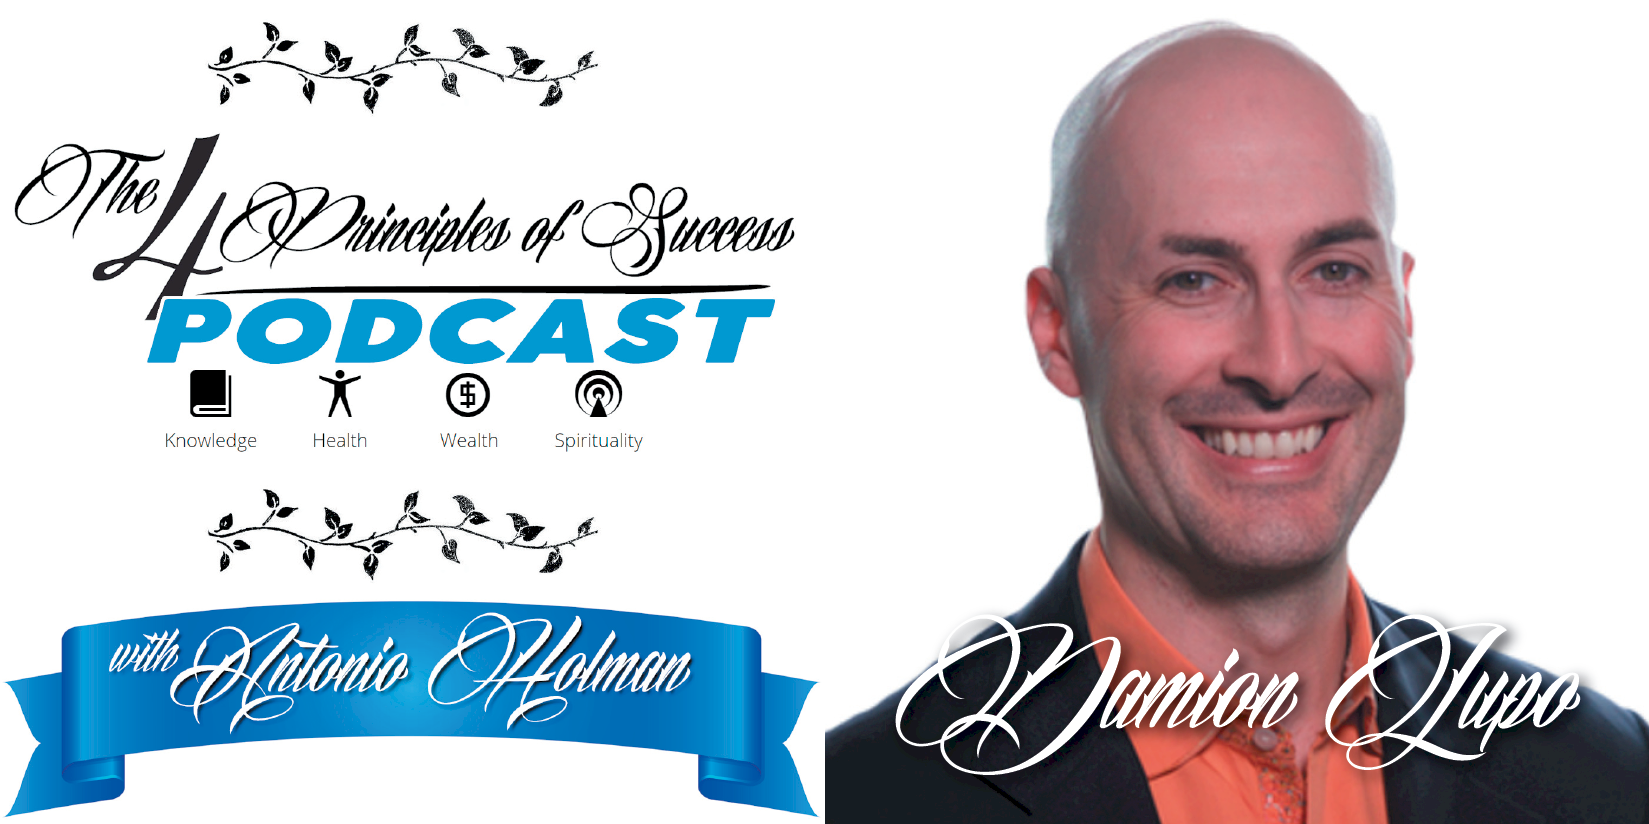 The 4 Principles of Success guest Damion Lupo